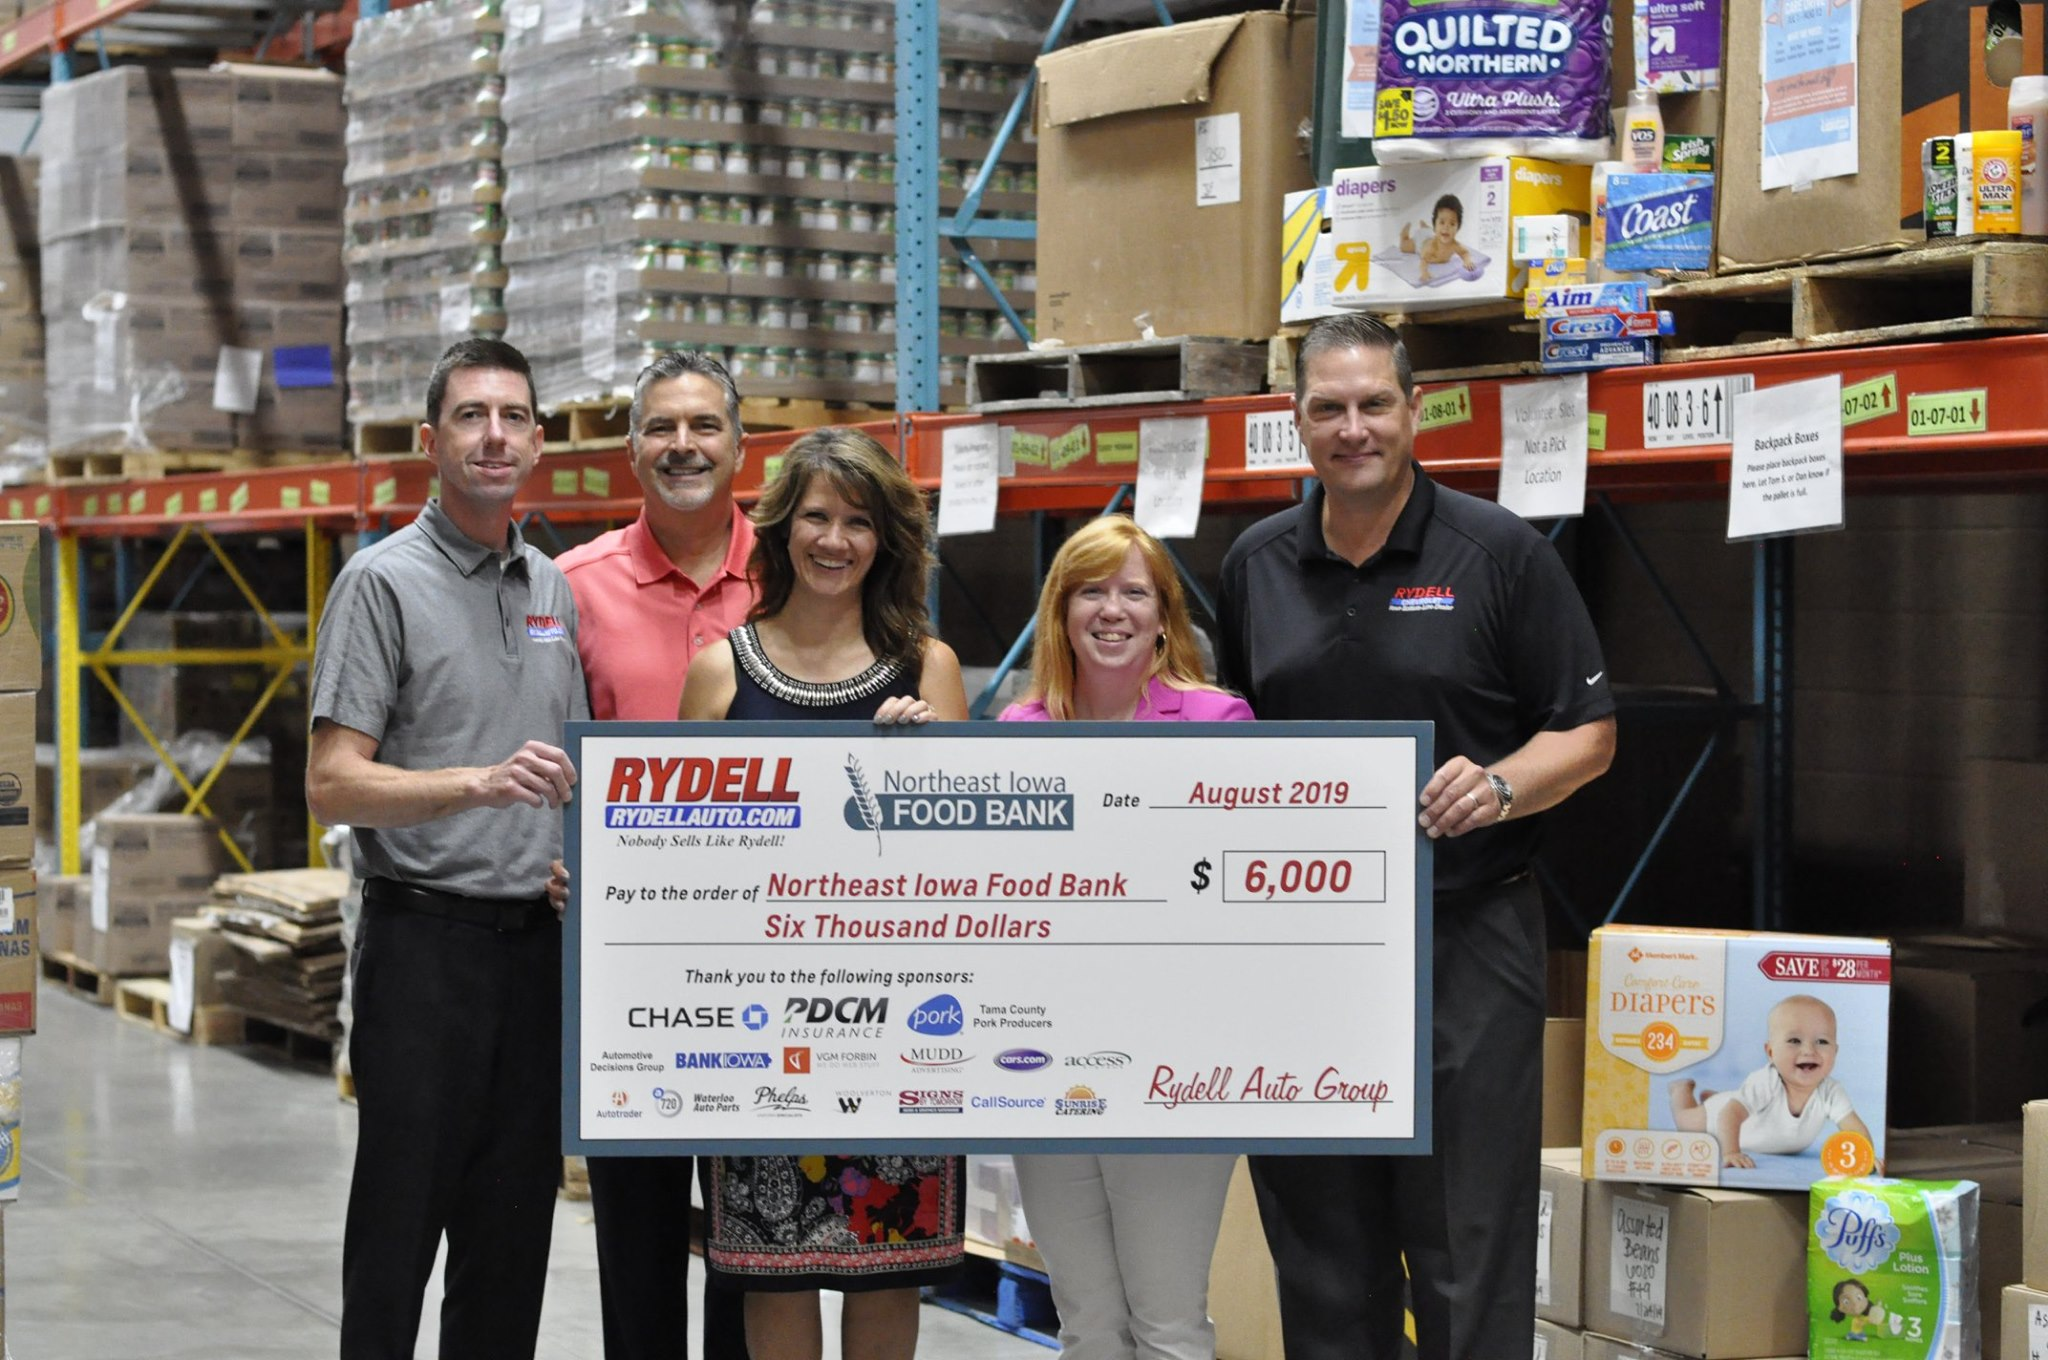 Rydell Chevrolet Donates Proceeds From Car Show Iowa Automobile Dealers Association